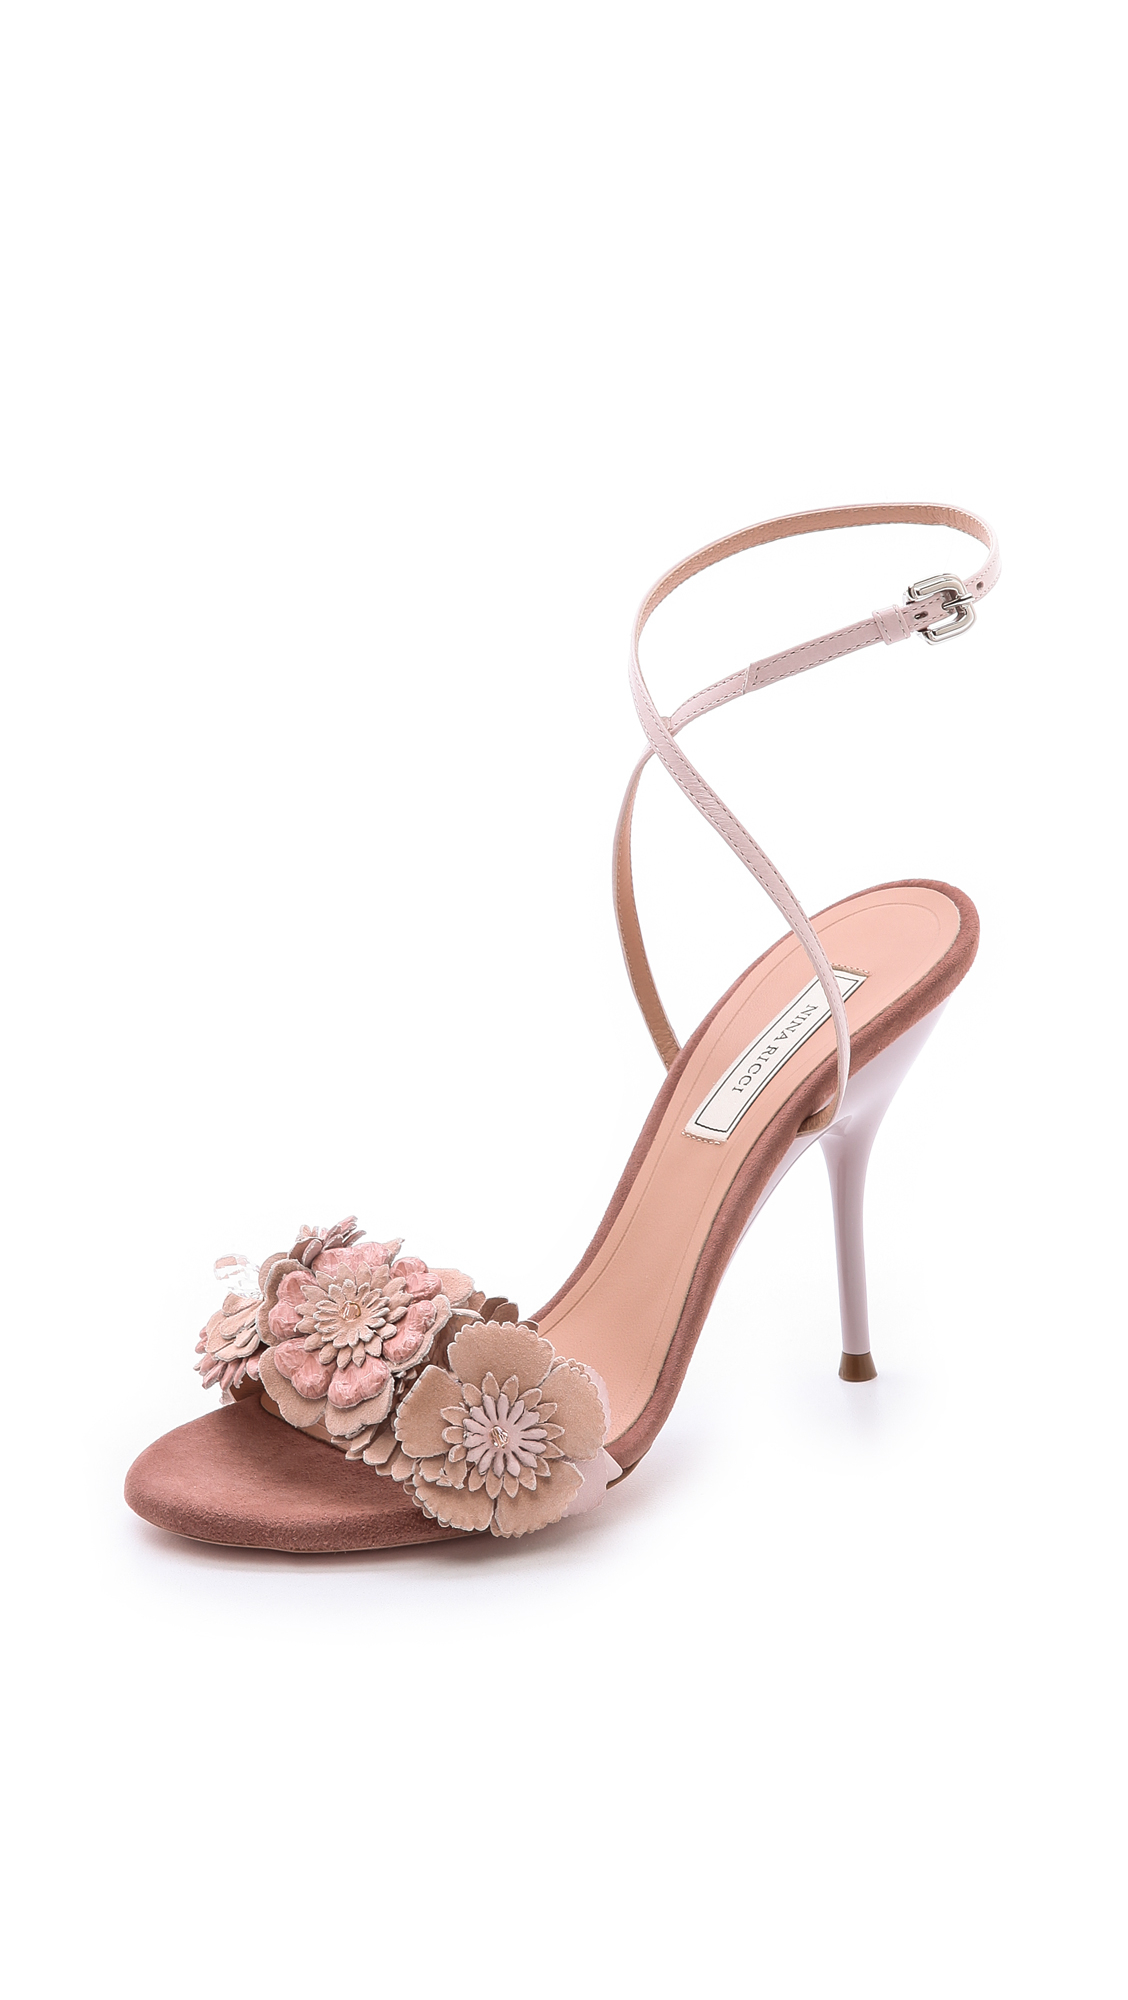 Nina Ricci Floral Slingback Sandals outlet official site cheap sale classic outlet prices manchester great sale sale online largest supplier for sale OdY6K